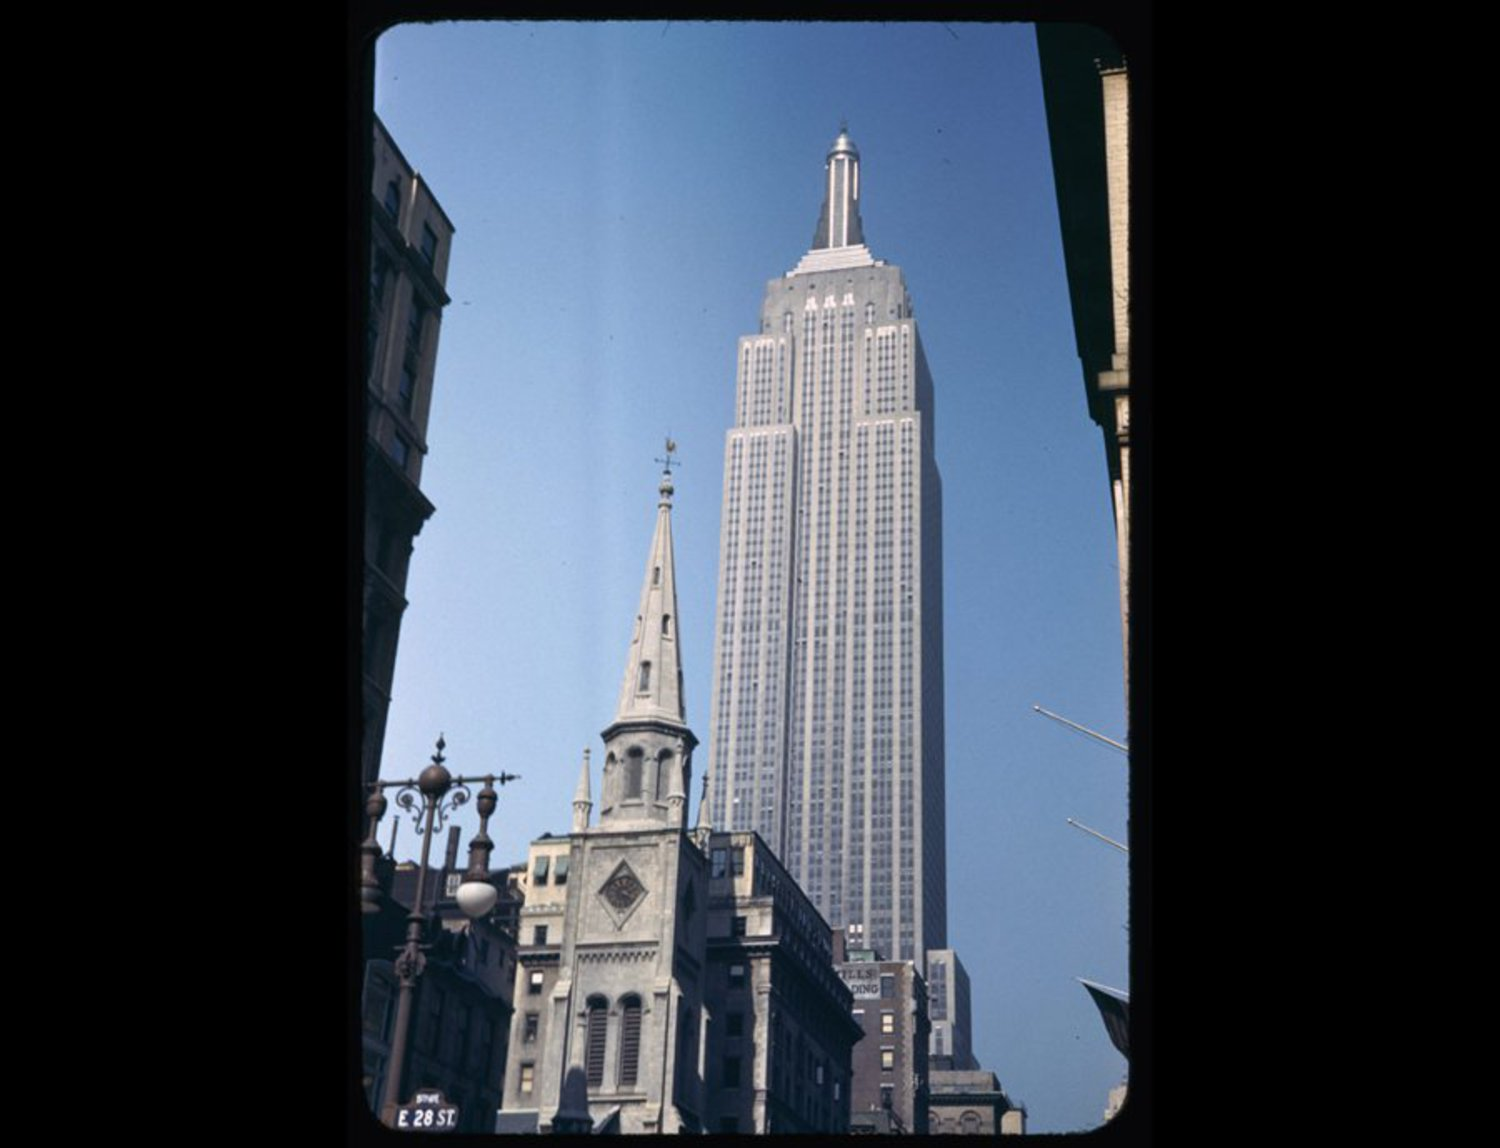 Here's a view of the Empire State Building from 28th Street in 1942, 11 years after it was completed.